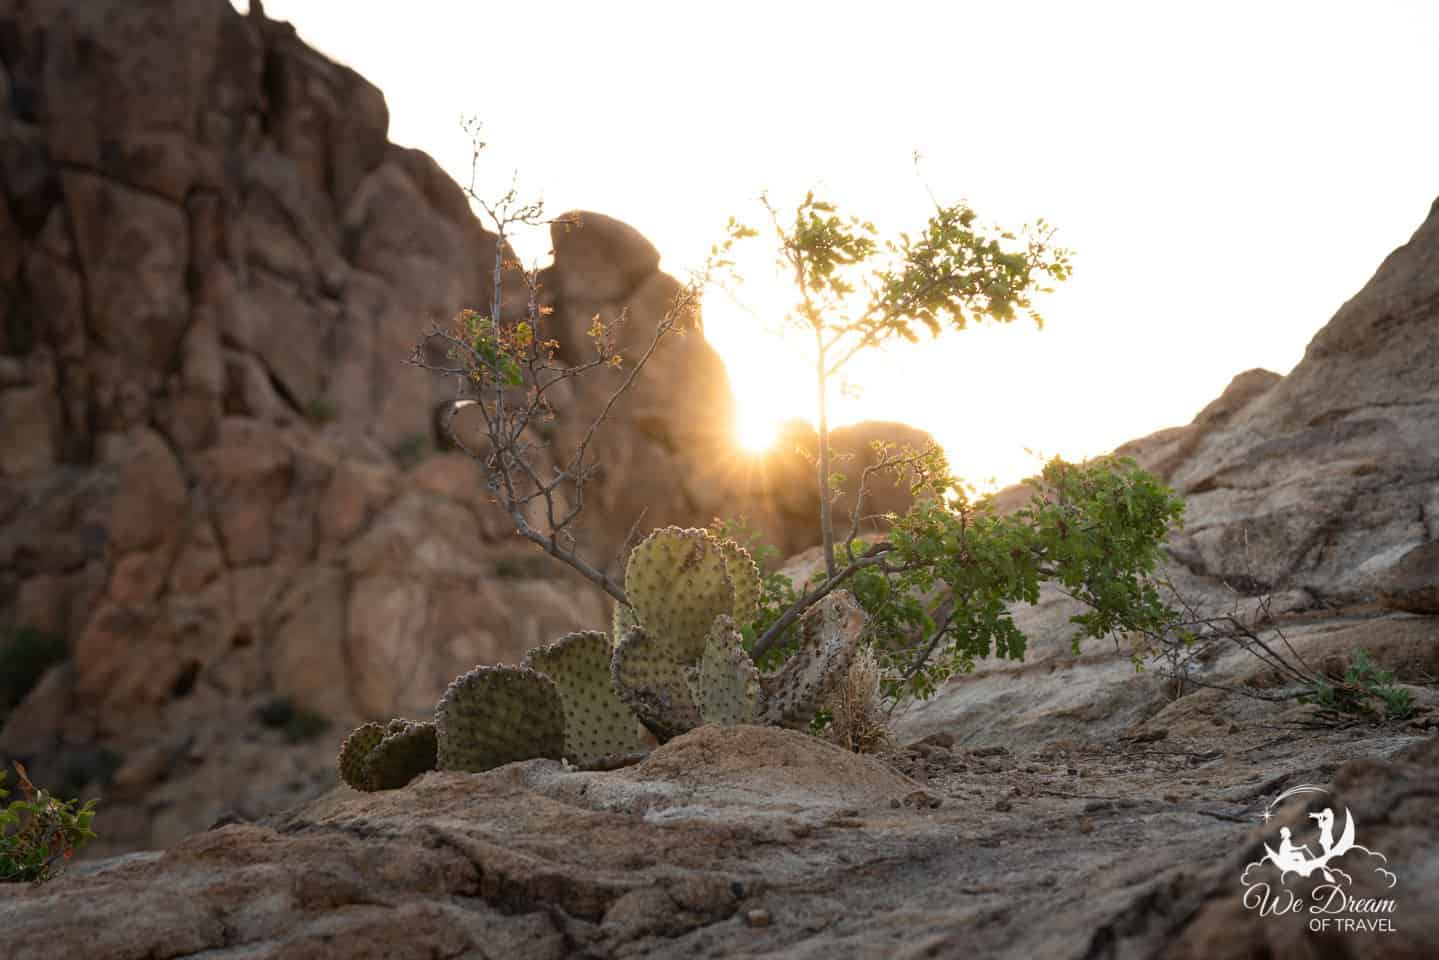 Golden Hour photography featuring a desert cactus in Big bend NP.